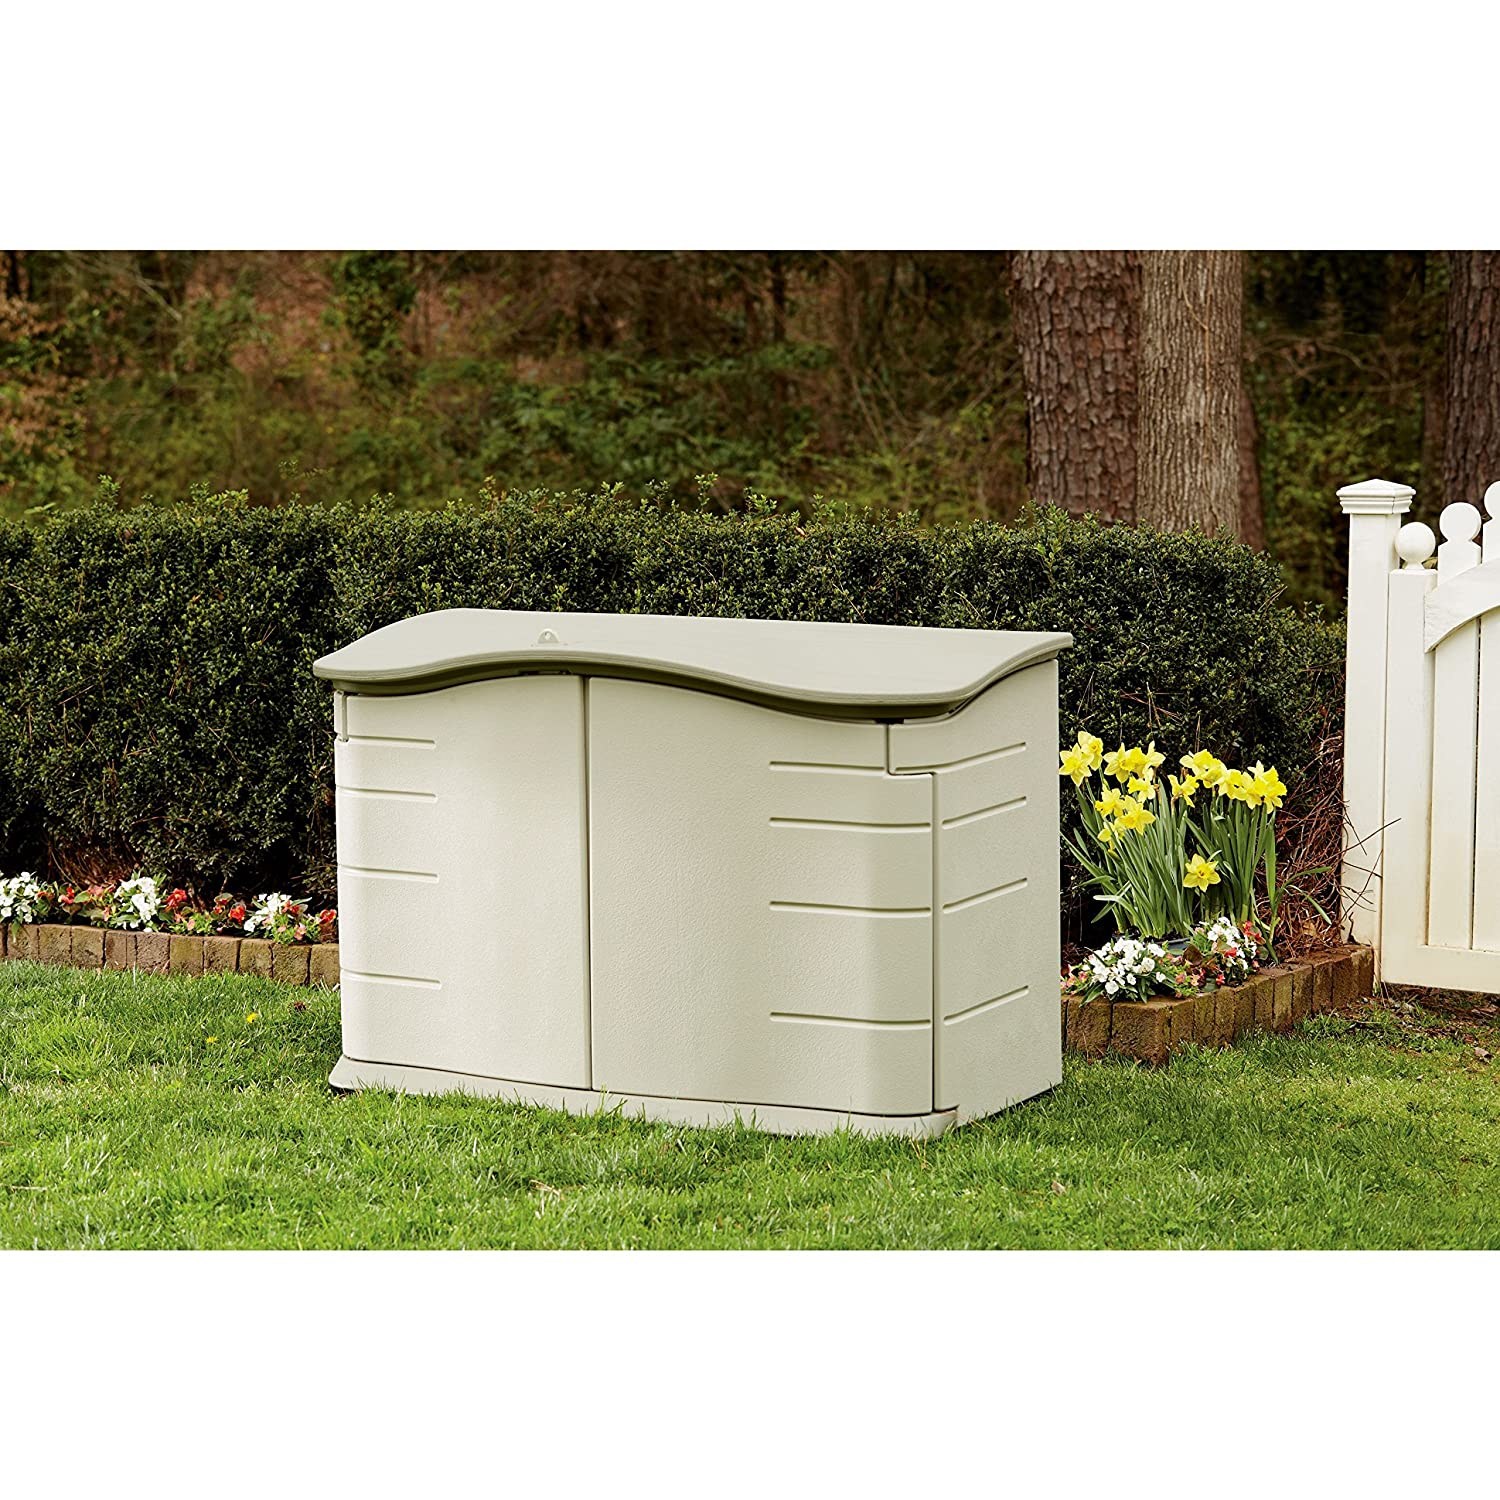 Amazon Rubbermaid Horizontal Storage Shed 2 ft 3 in x 4 ft